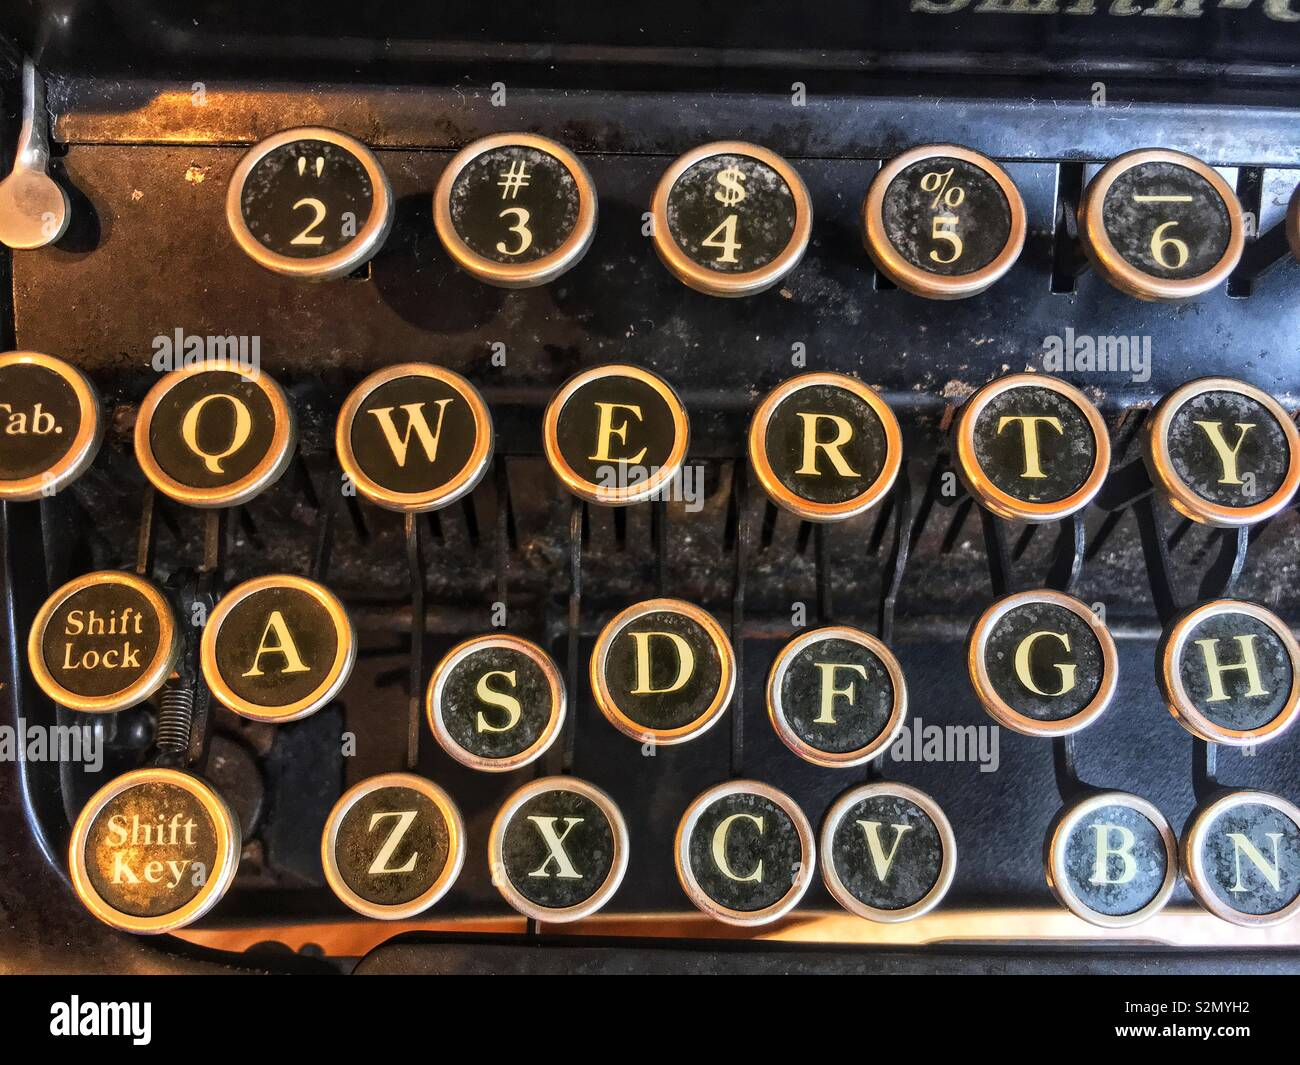 Full frame closeup of an antique typewriter keys spelling QWERTY. - Stock Image